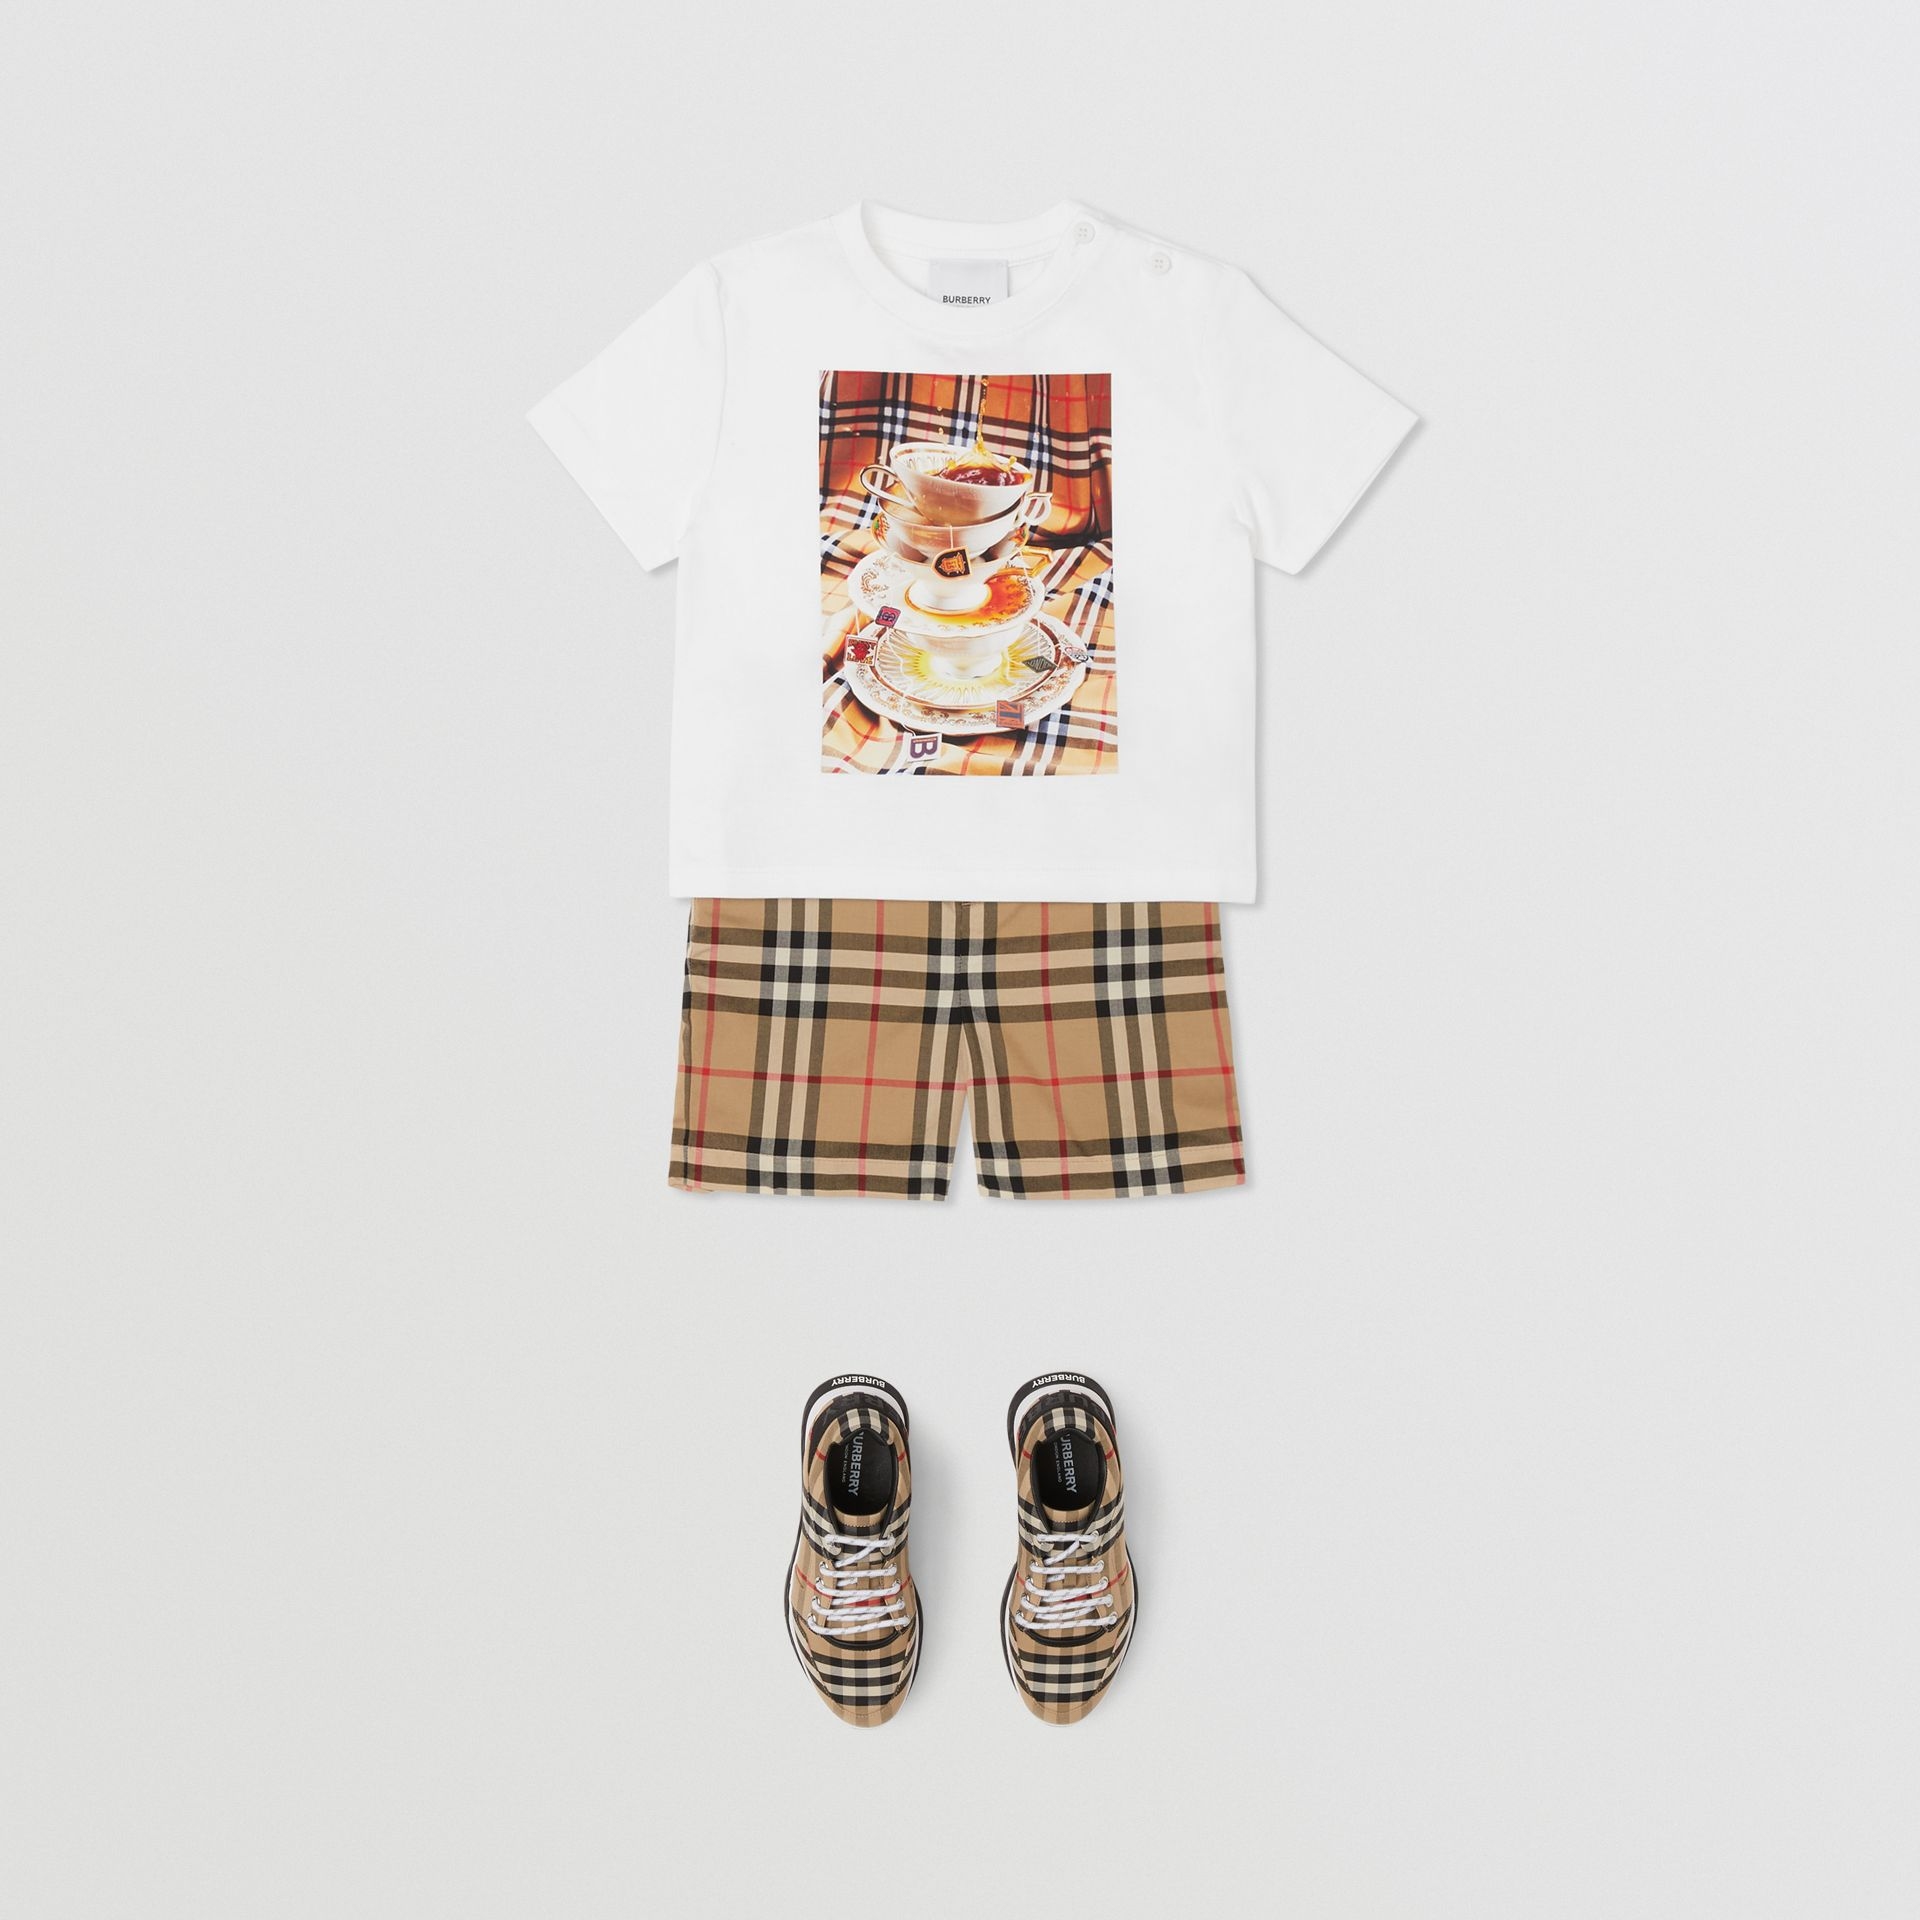 Teacup Print T-shirt in Multicolour - Children | Burberry - gallery image 3